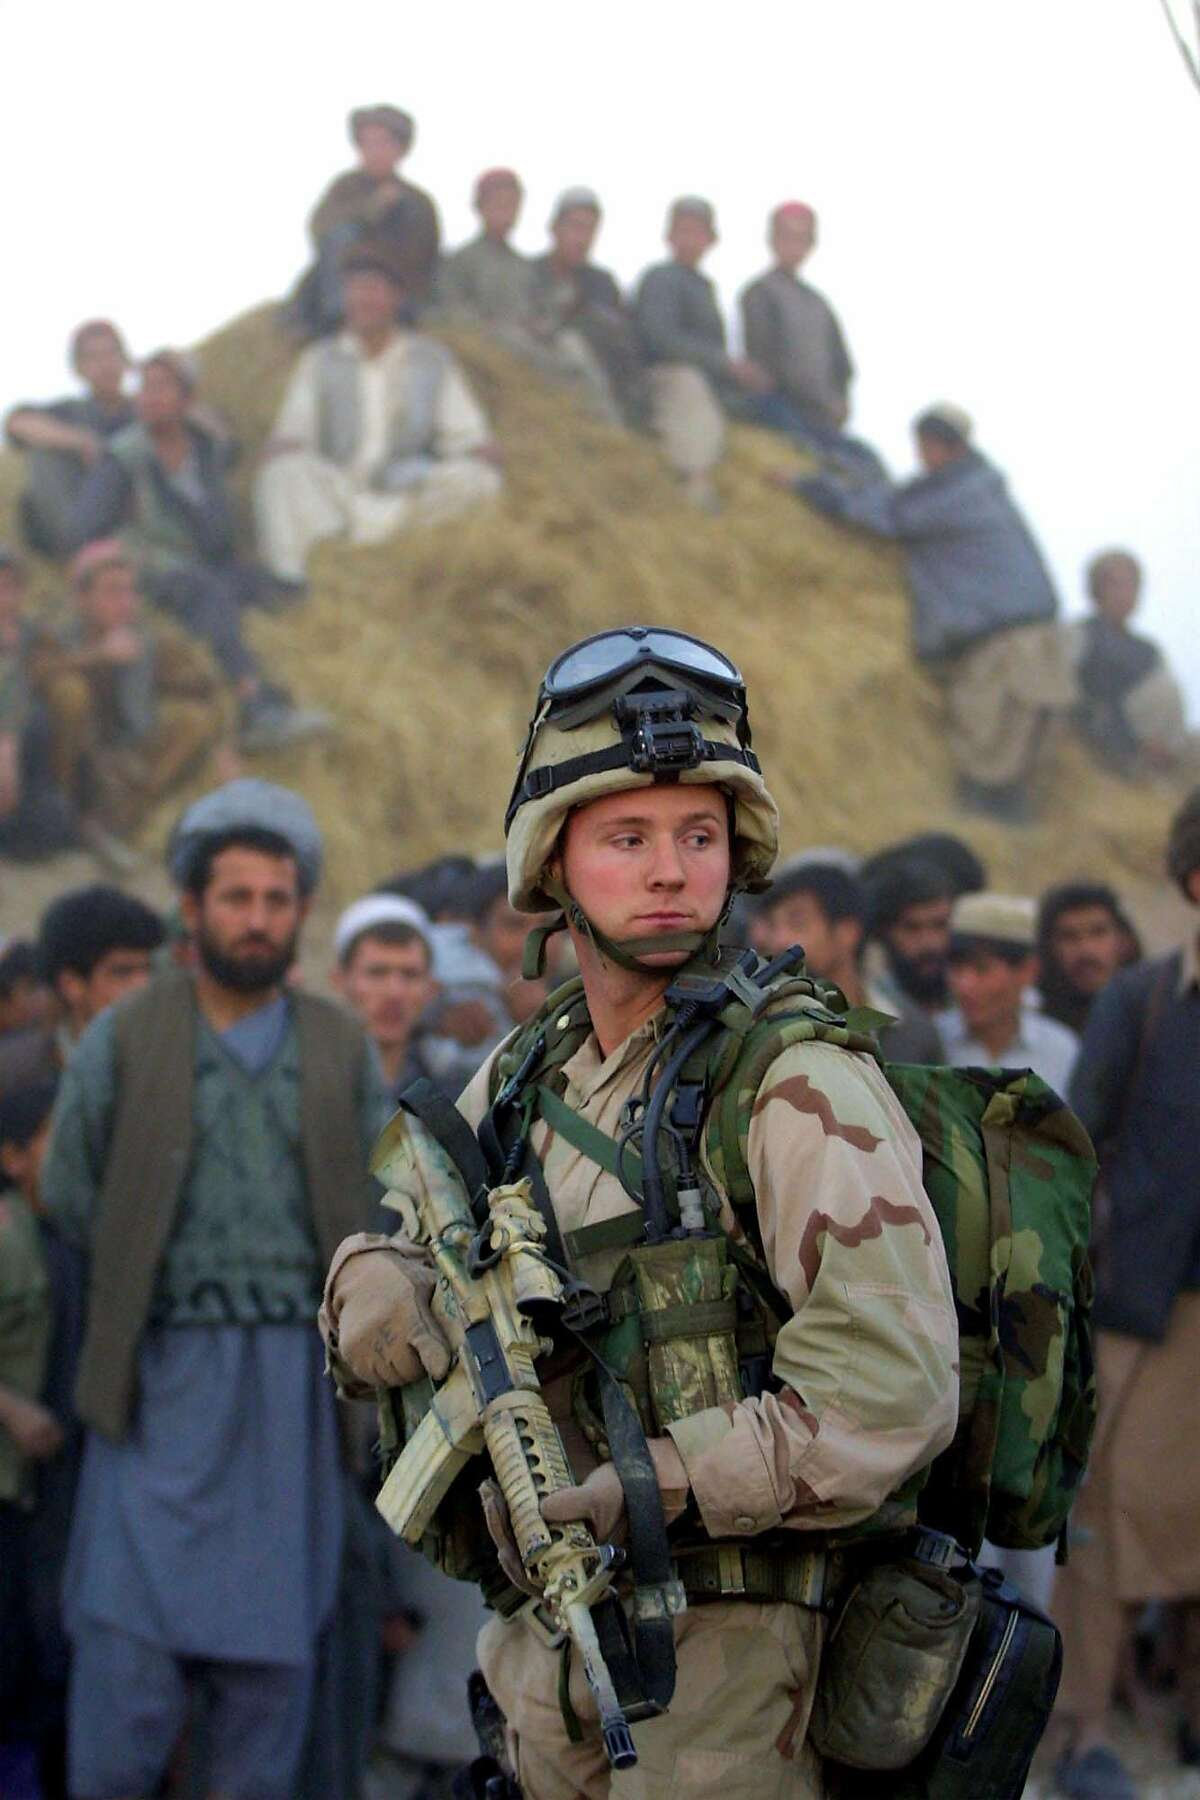 FILE - In this Nov. 15, 2001 file photo, at sundown, a U.S. Army Special Forces soldier stands guard near a helicopter, not pictured, as Afghan civilians and militia members loyal to the northern alliance look on, in Khwaja Bahuaddin, Afghanistan, 350 kilometers (220 miles) northeast of Kabul. For 10 years, ever since the towers fell, the United States has fought a war in a distant land _ in hopes, it says, of protecting American interests and making the world safer from terrorism. Now, as President Barack Obama plans to end U.S. combat operations in Afghanistan by 2014, the question remains as muddy as ever: What happened here? (AP Photo/Brennan Linsley, File)